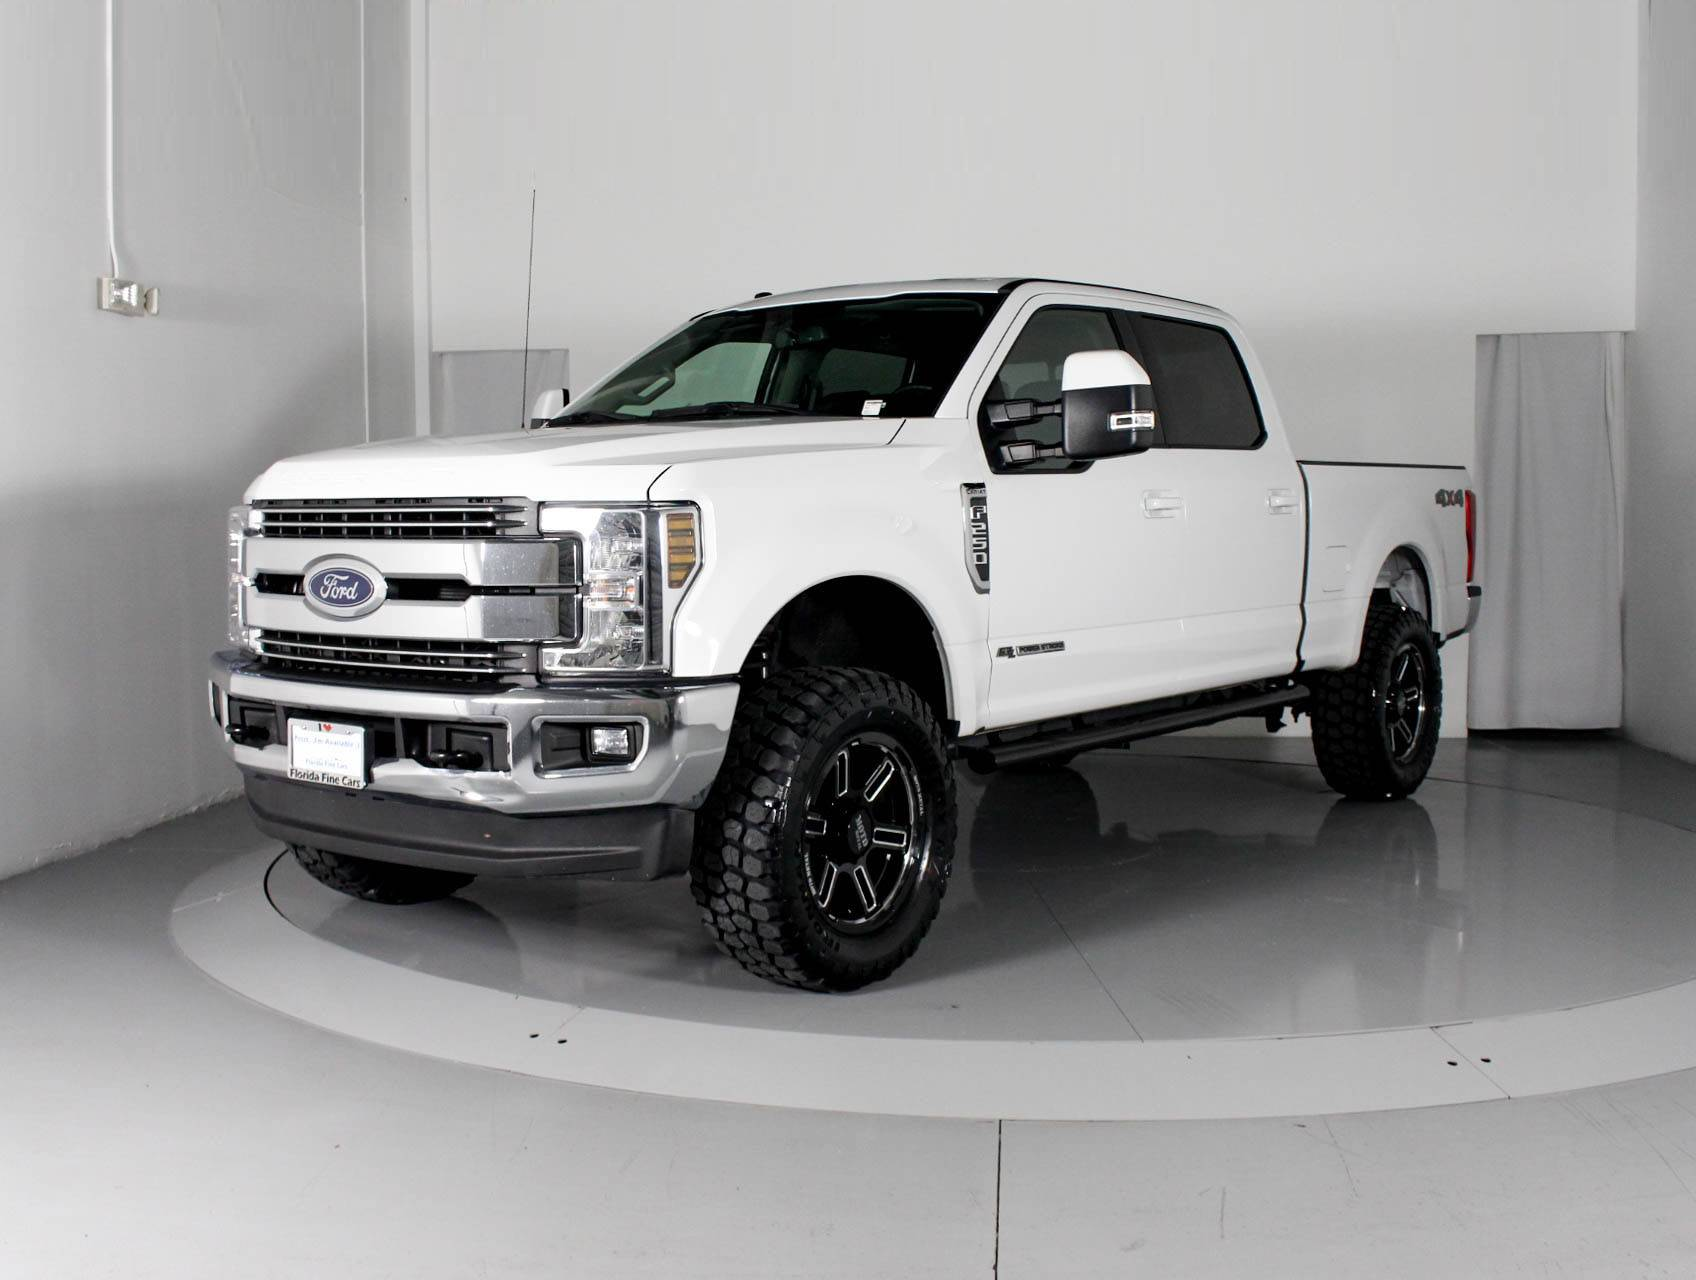 Used Ford 4x4 Trucks For Sale >> Used 2018 Ford F 250 Lariat Crew Cab 4x4 Truck For Sale In